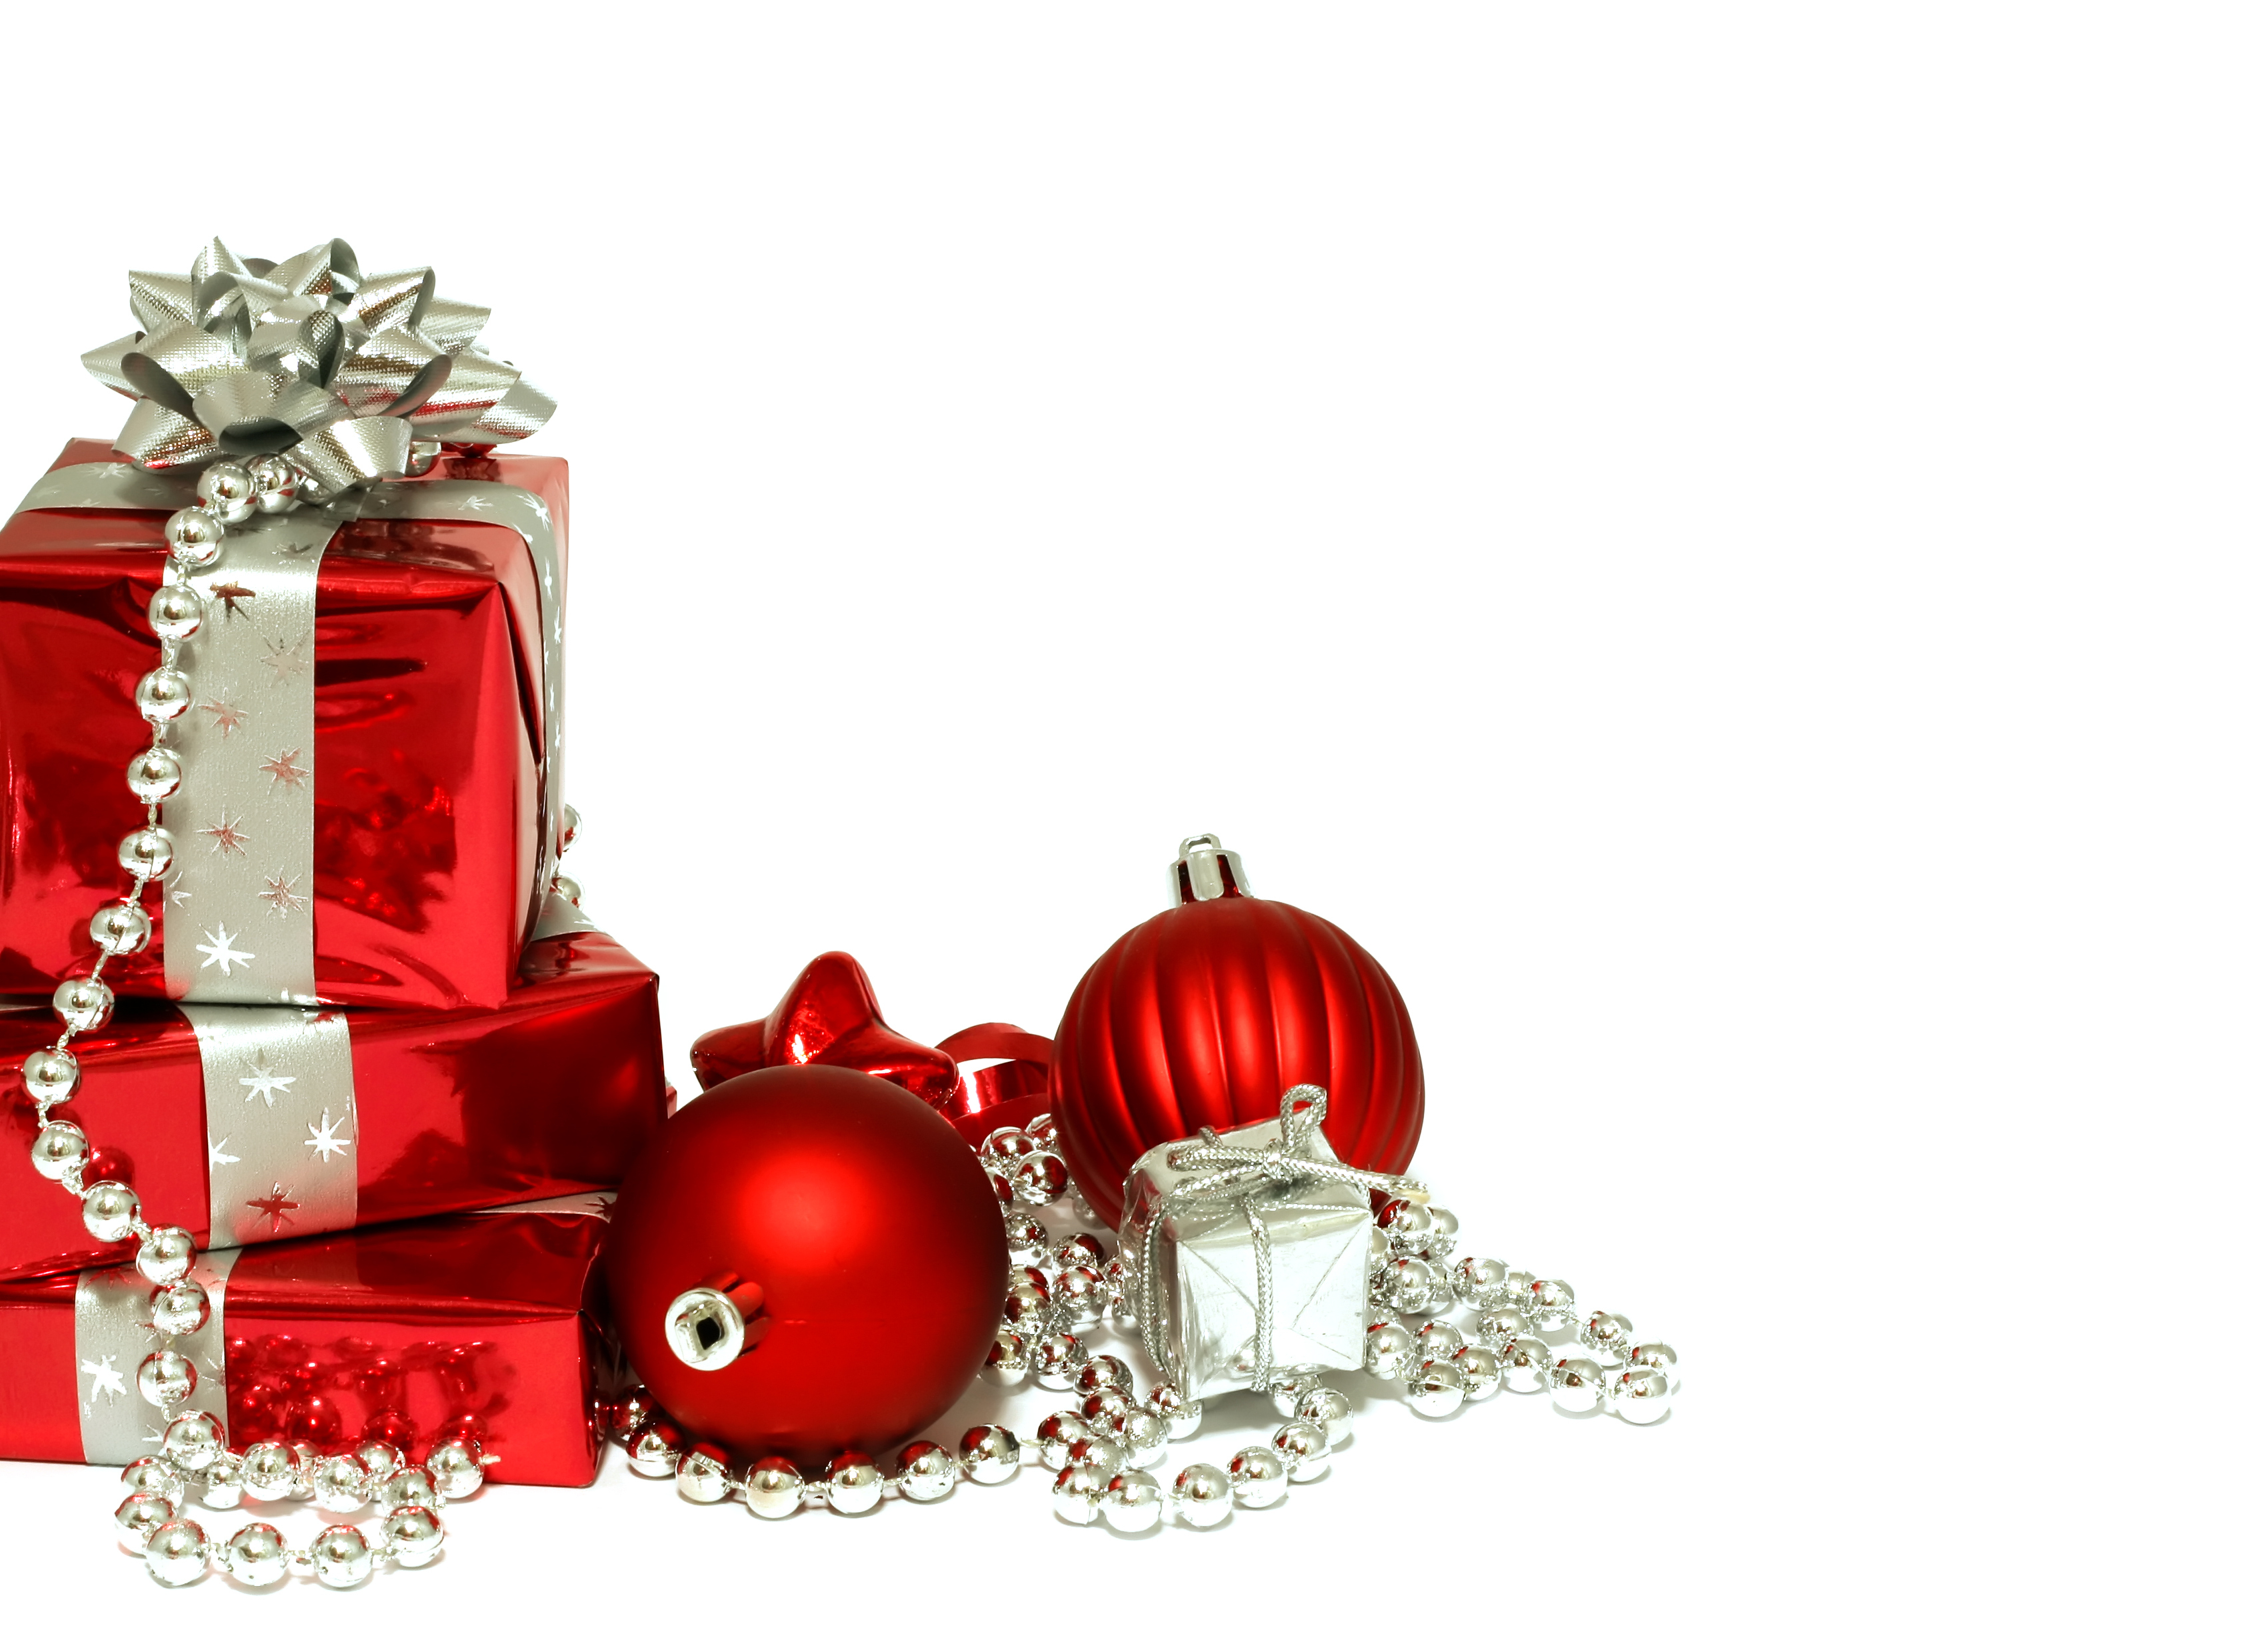 christmas decorations wallpapers high quality download free - Free Christmas Decorations